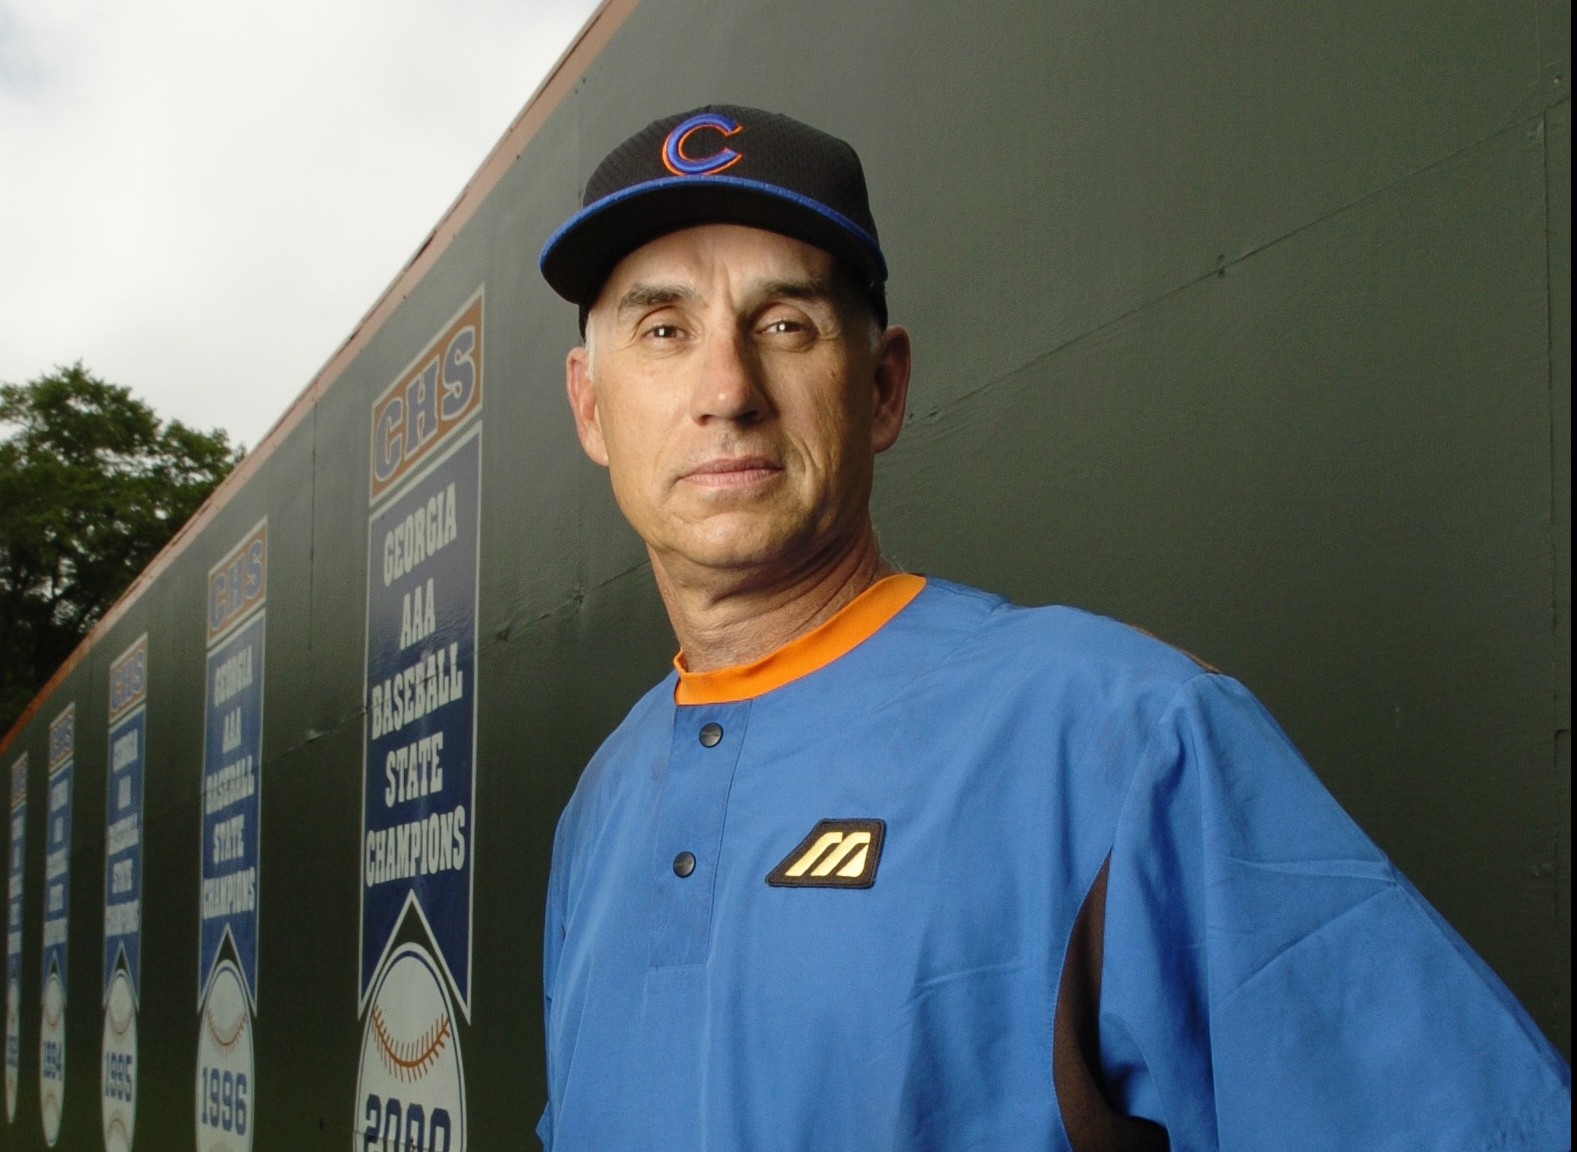 Bobby Howard, shown in this 2004 photo, was hired as the baseball coach at Central in Alabama. (Photo: Michael A. Schwarz)